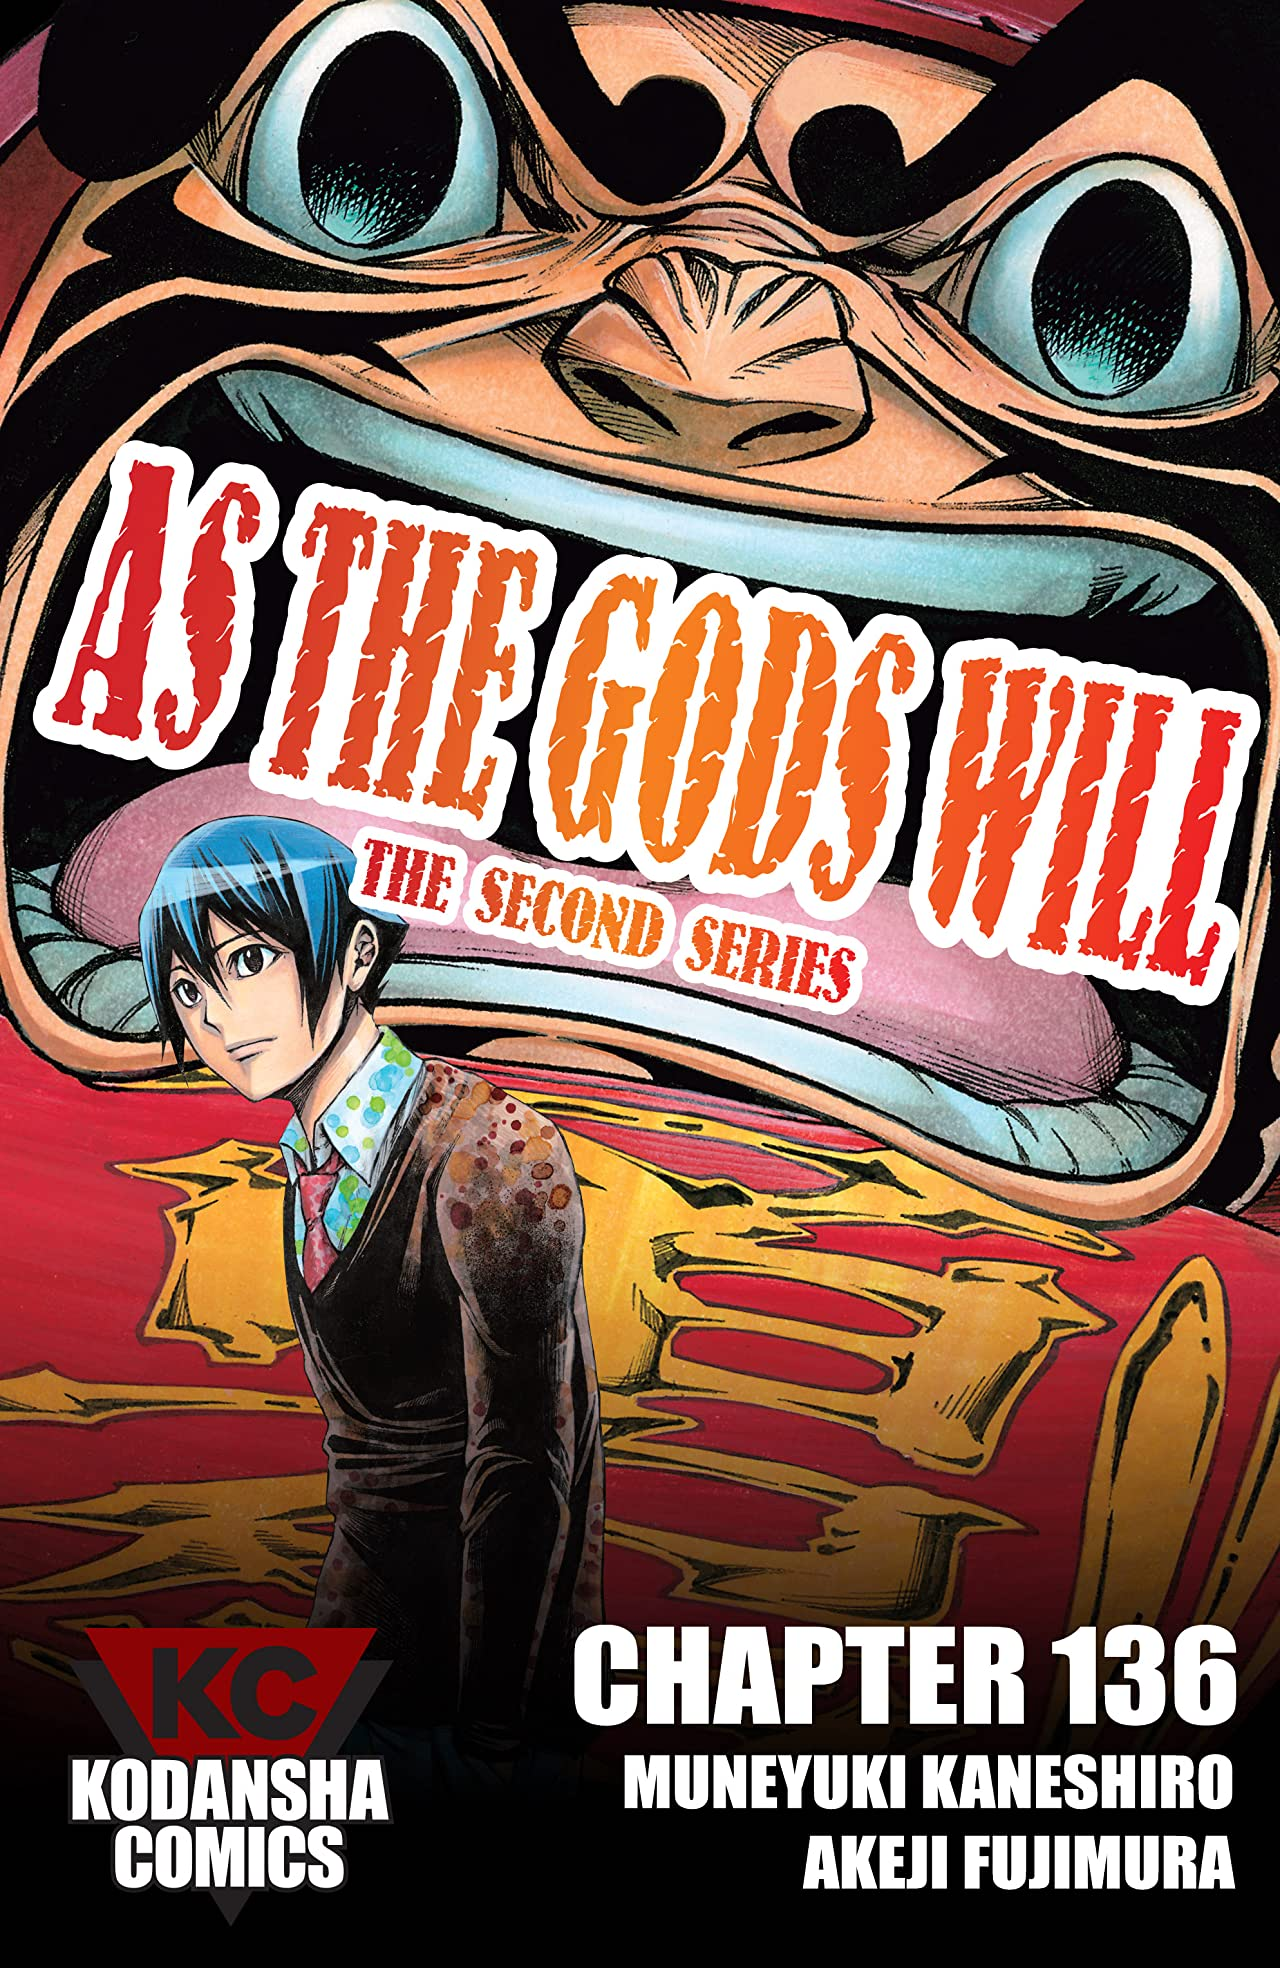 As The Gods Will: The Second Series #136